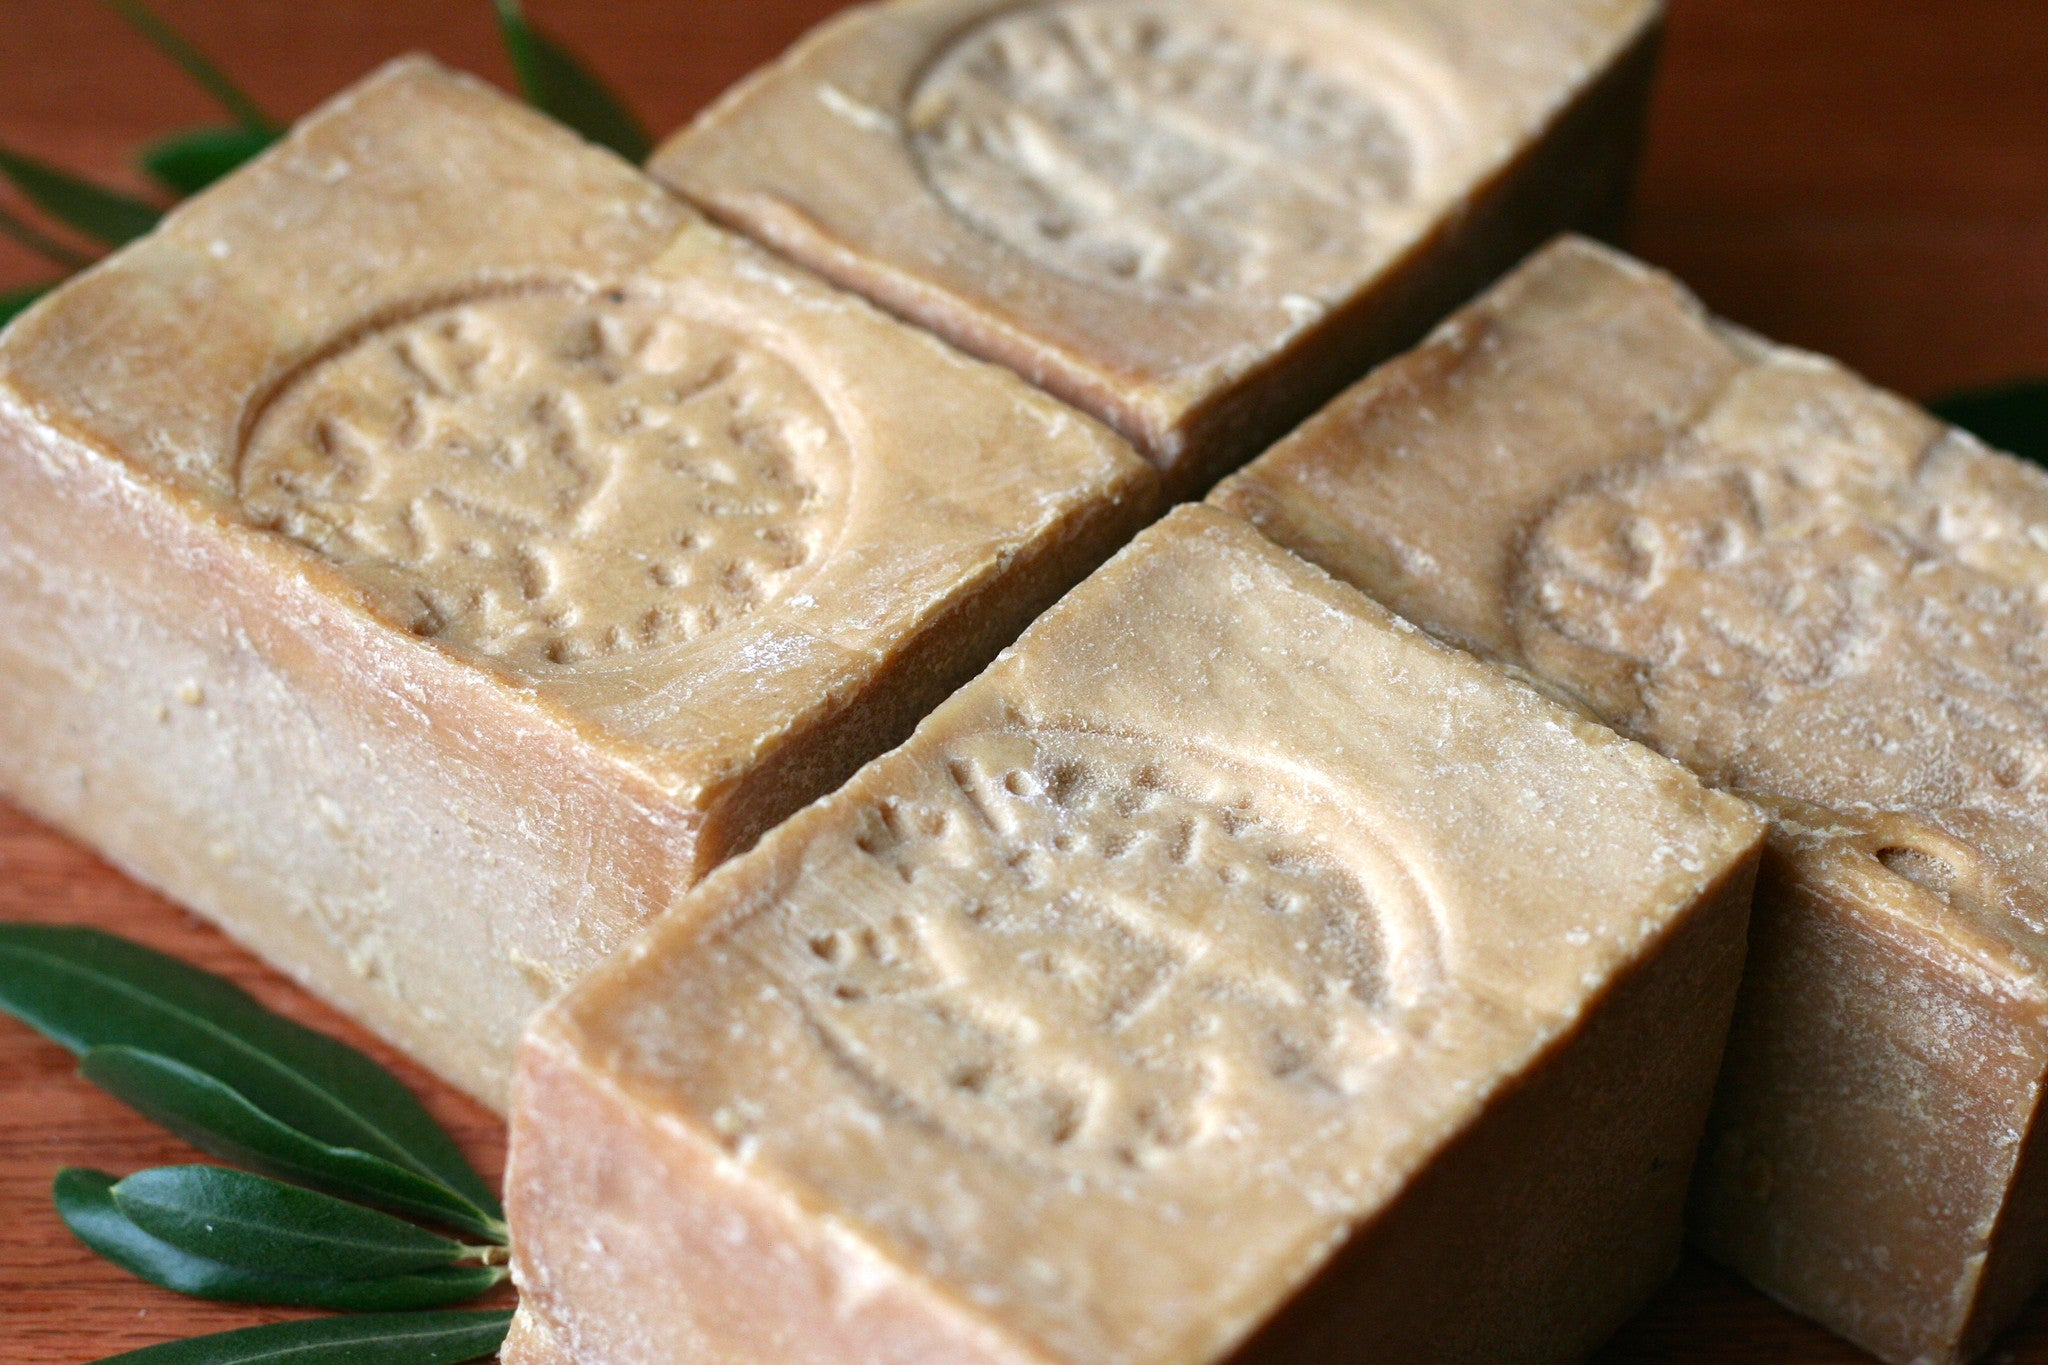 Syrian olive oil soap - Mediterranean olive oil soap - All natural soap - Guar soap - Bay laurel and olive oil soap